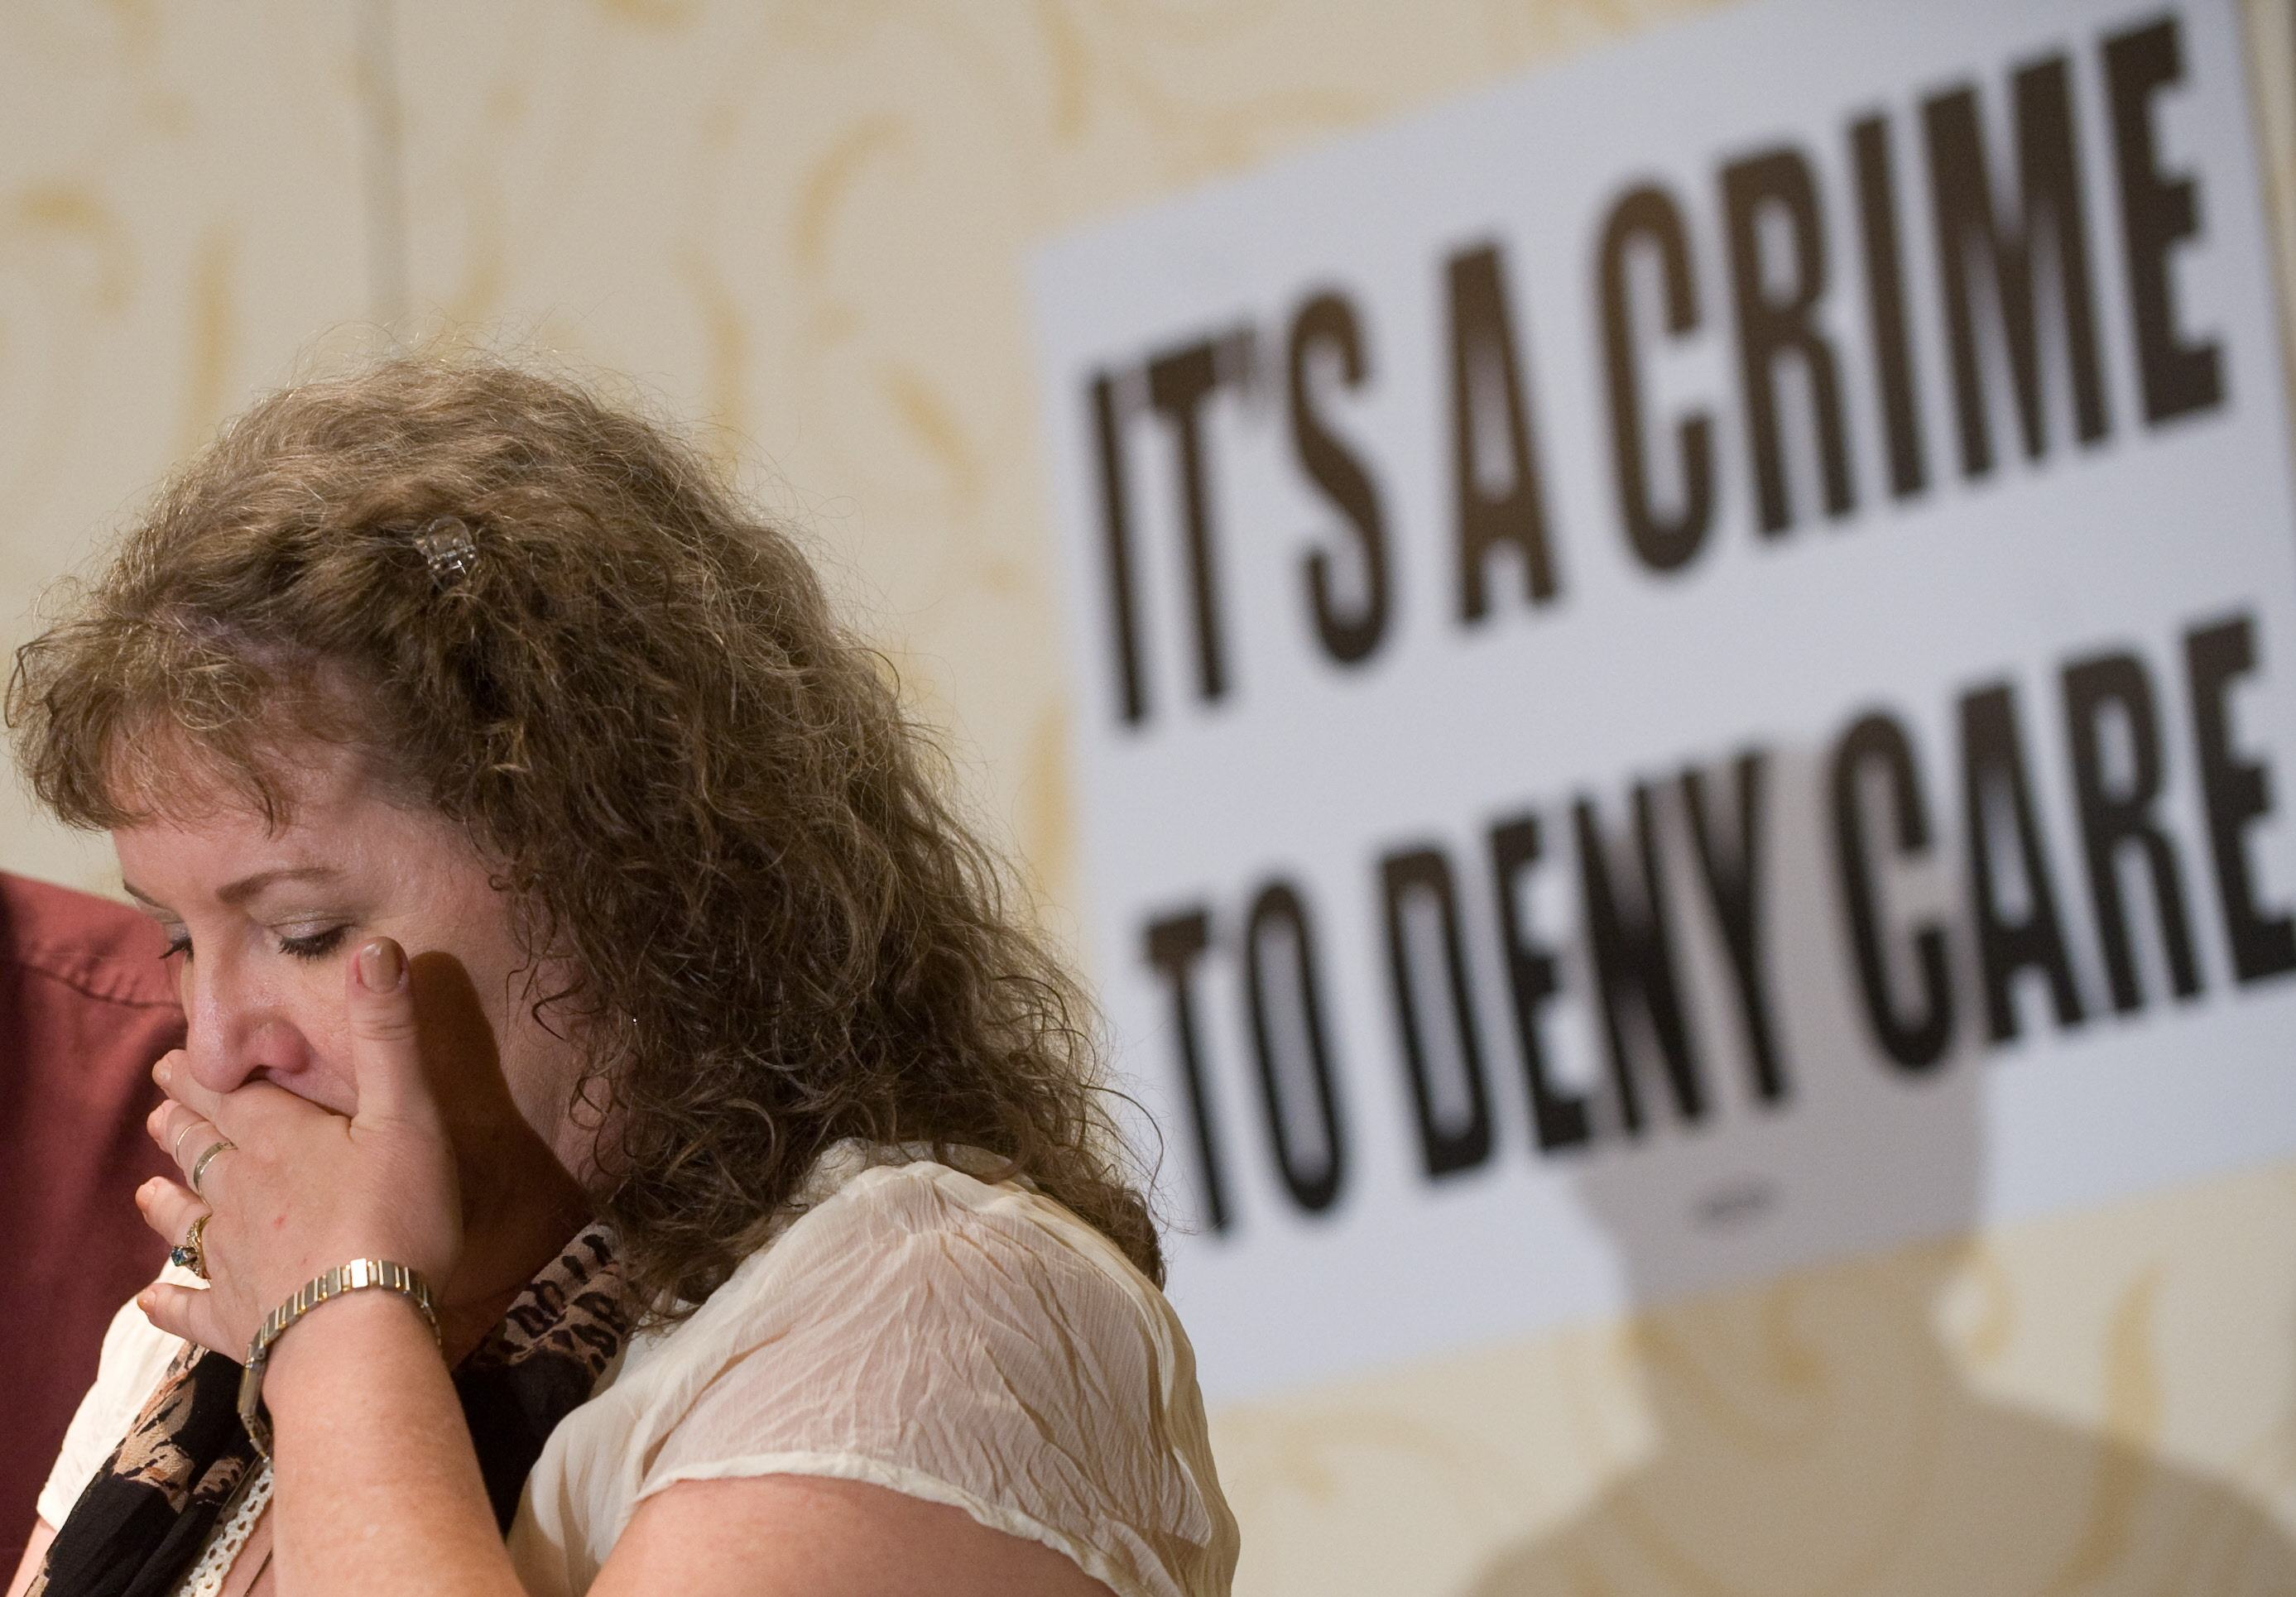 """Kelly Arellanes of Little Rock, Arkansas, cries in front of a sign that says """"it's a crime to deny care"""""""